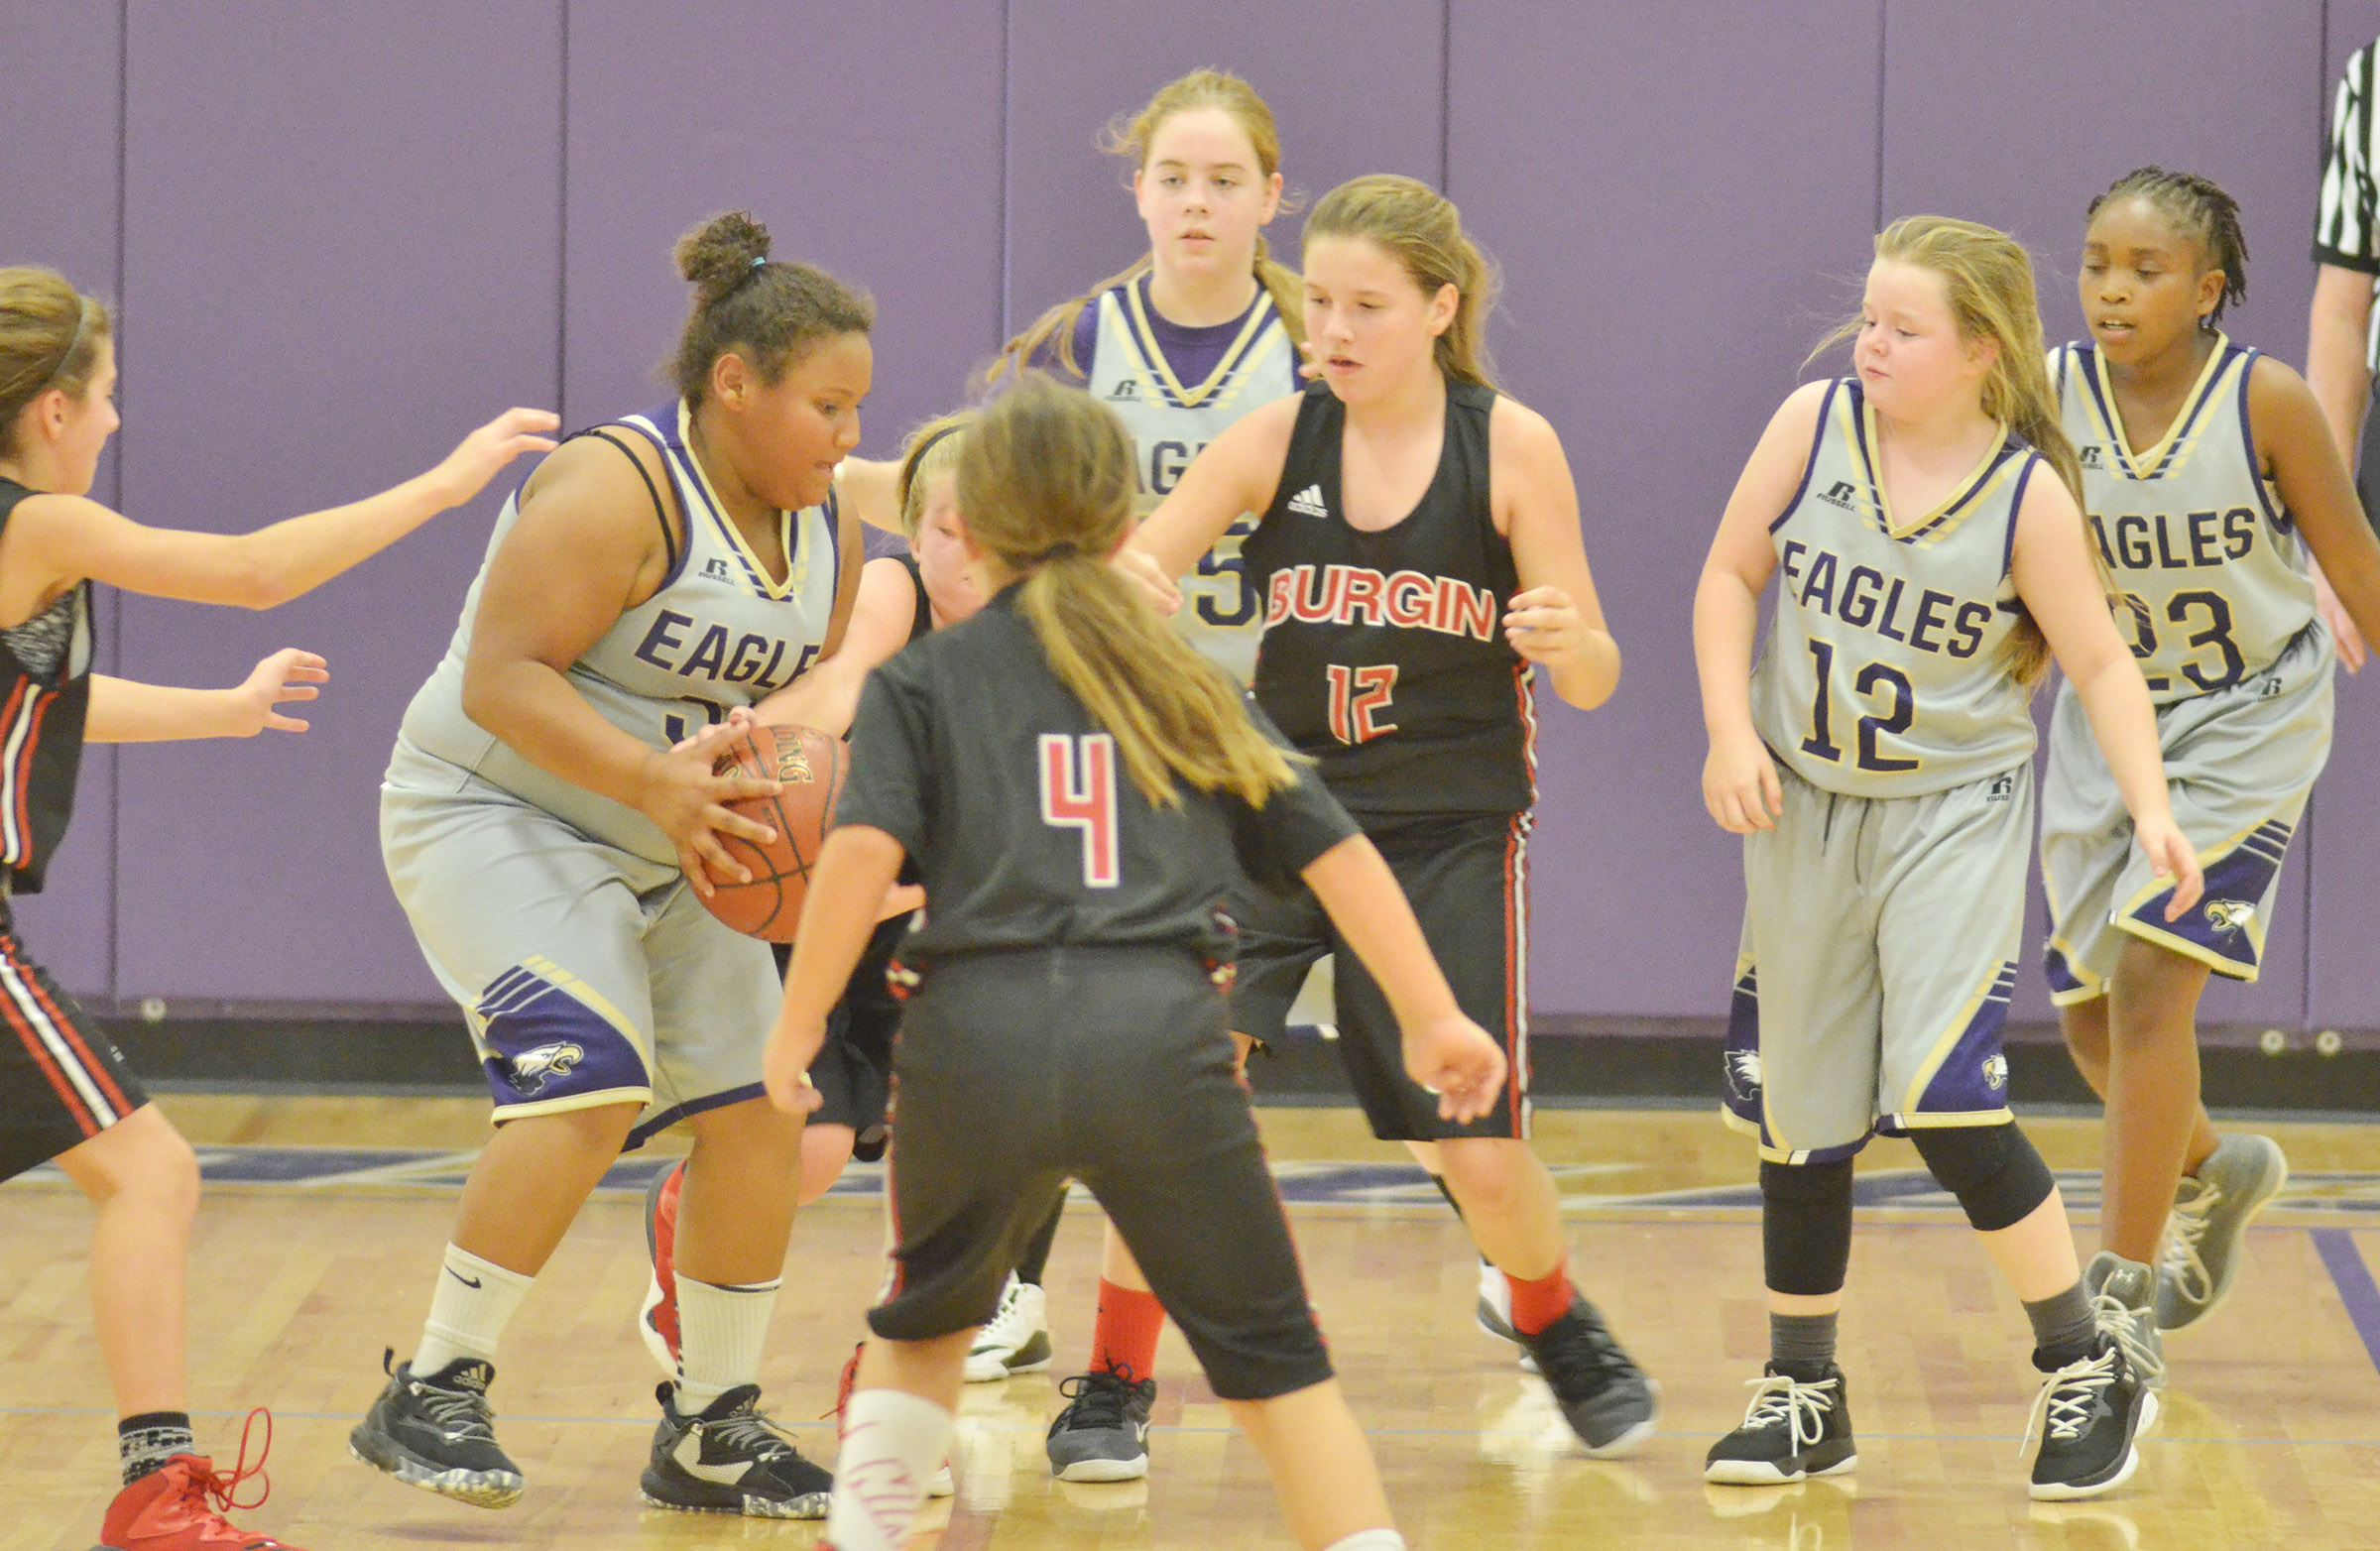 From left, Campbellsville Elementary School fifth-grader Dezarae Washington, CMS sixth-grader Layla Steen and fifth-graders Miley Hash and Ta'Zaria Owens play defense.